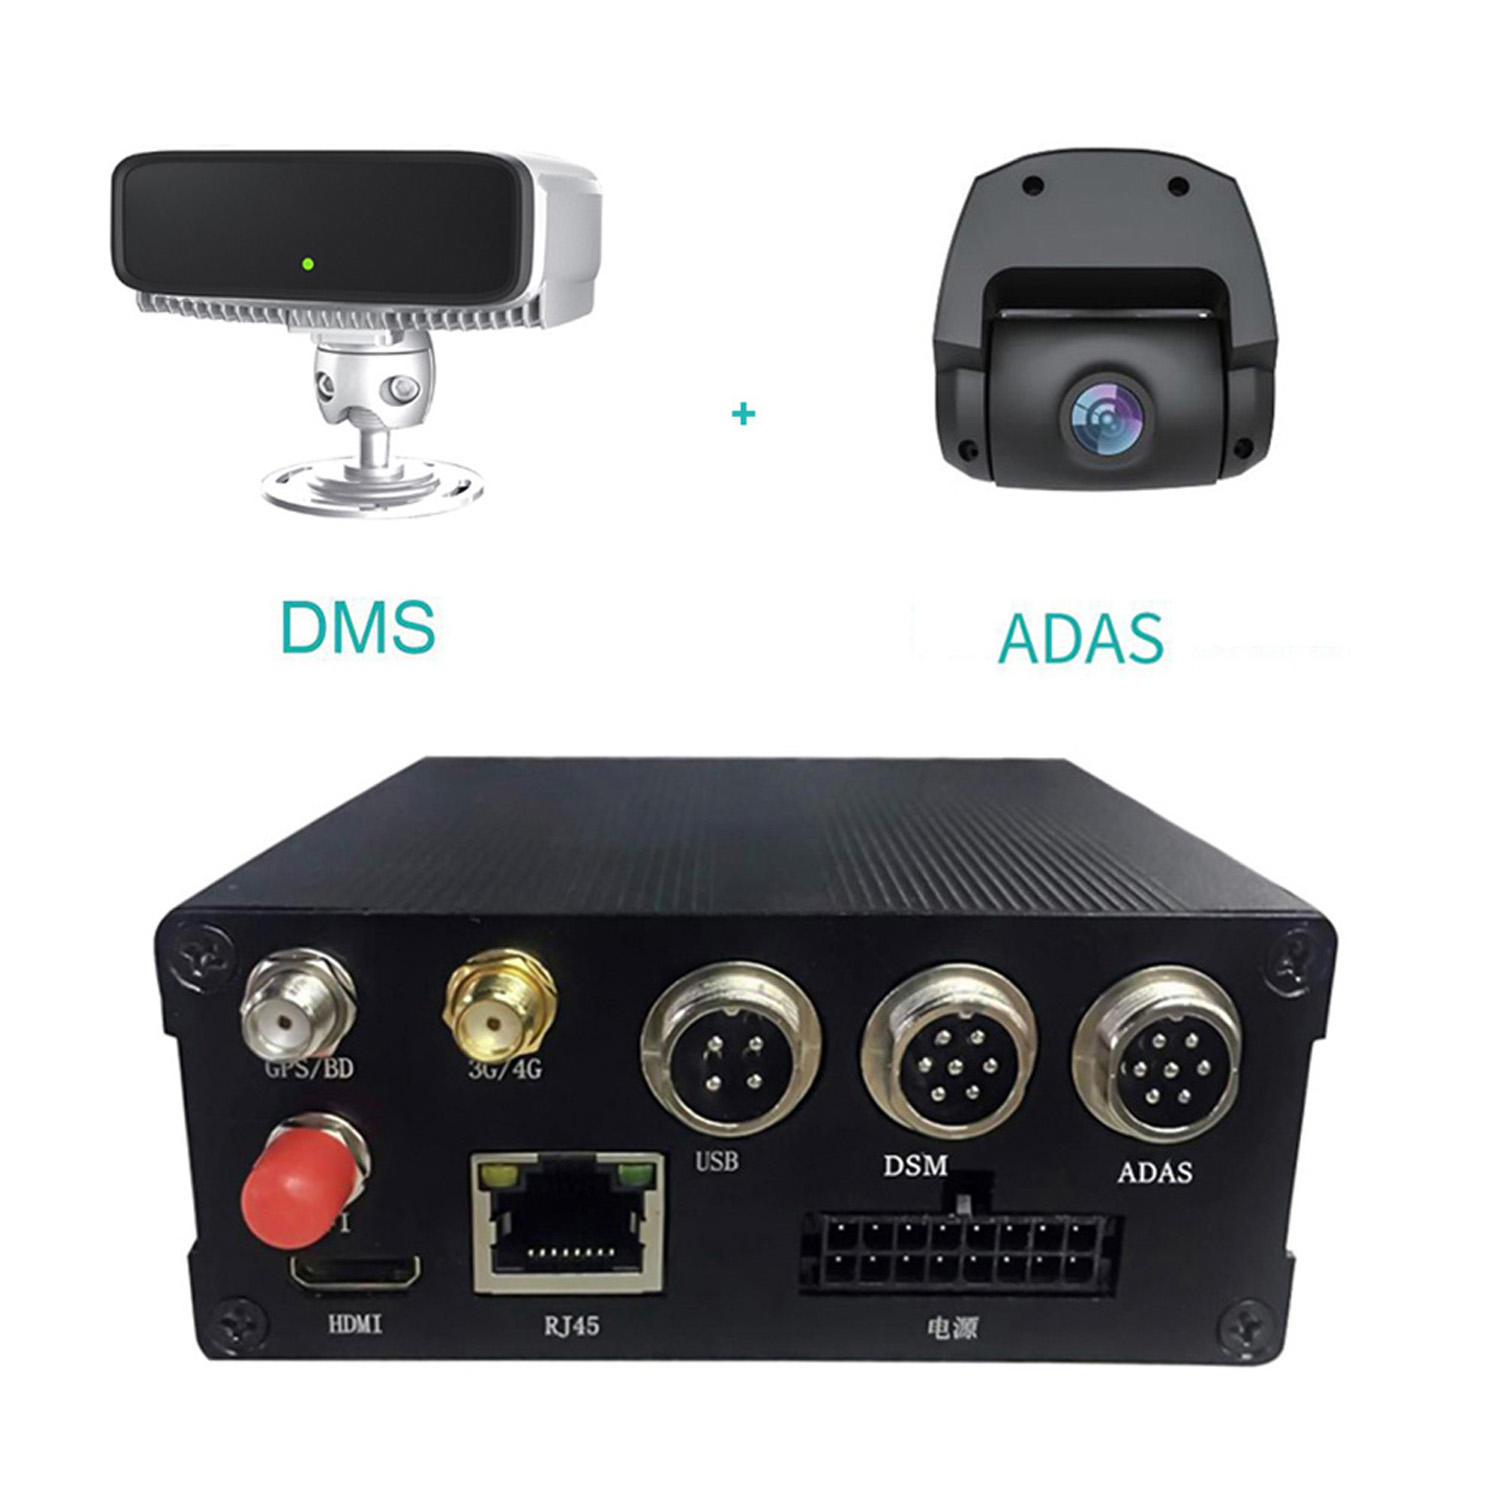 2021 Lowest Price Middle East Saudi Arabia Hot Sale Gps Navigation Bus Camera Car Surveillance Audio Alarm Security System